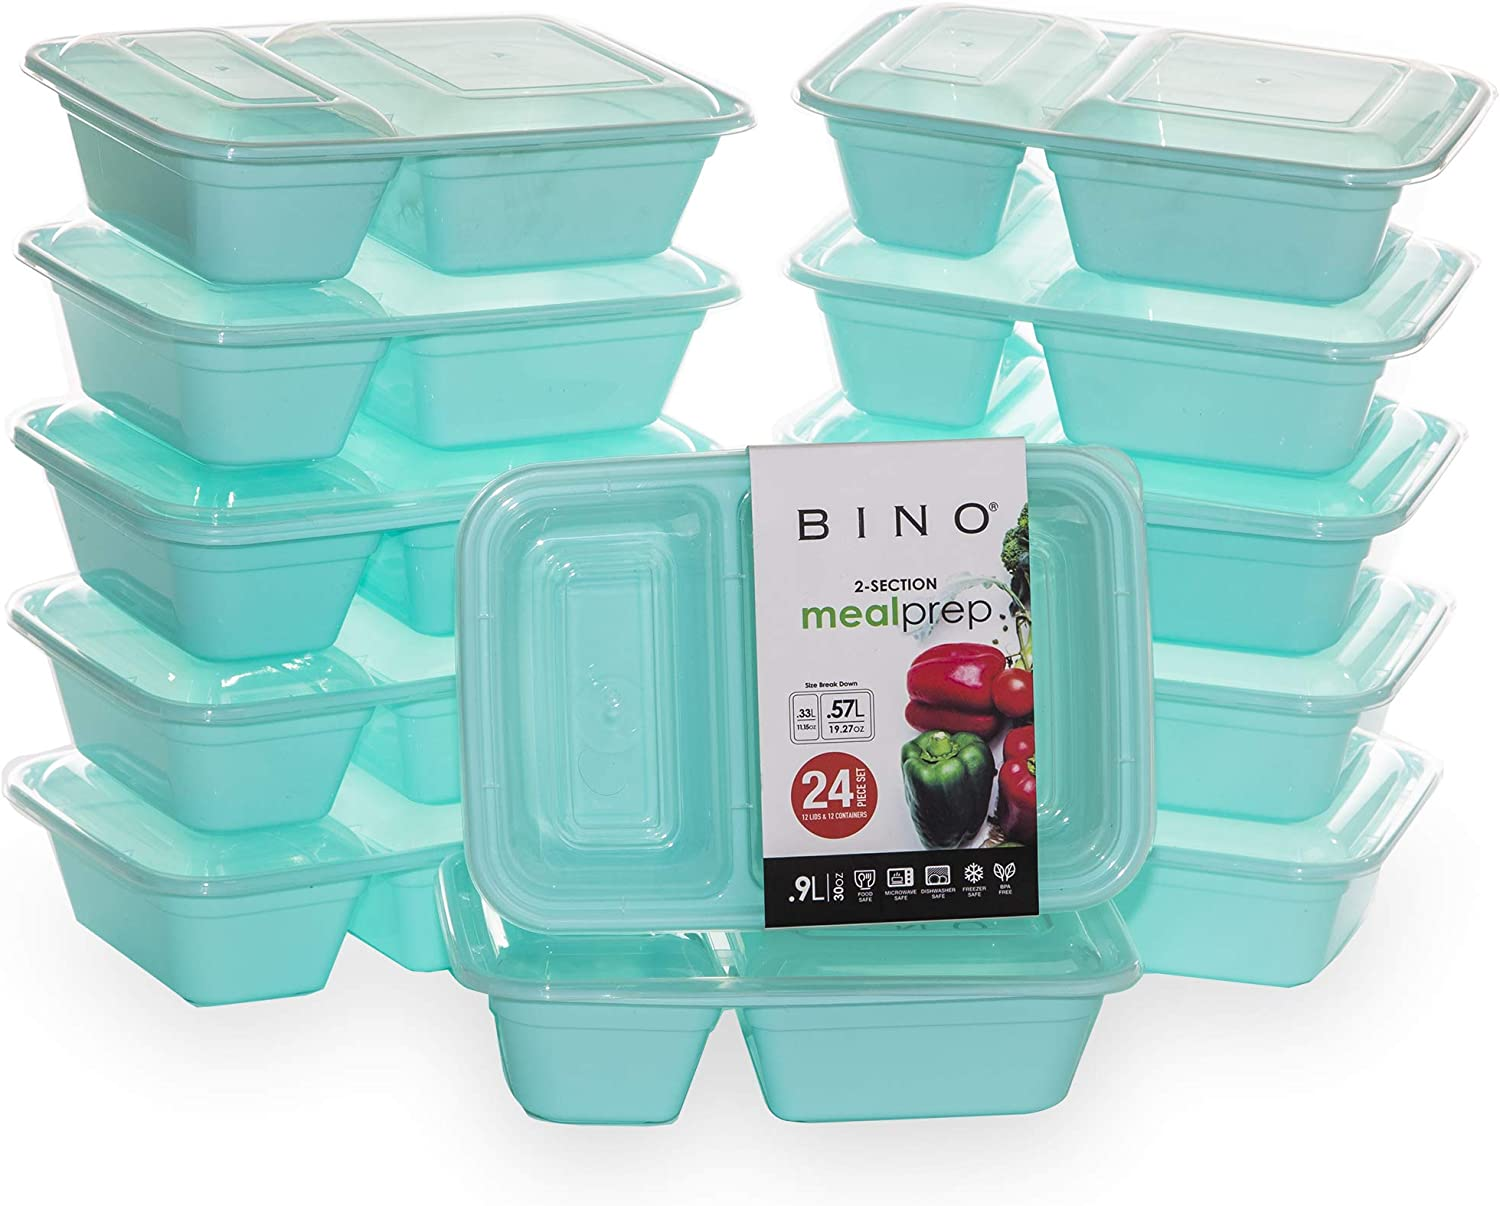 BINO Meal Prep Containers with Lids - 2 Compartment /30 oz [12-Pack], Light Blue - Bento Box Lunch Containers for Adults Food Containers Meal Prep Food Prep Containers Set